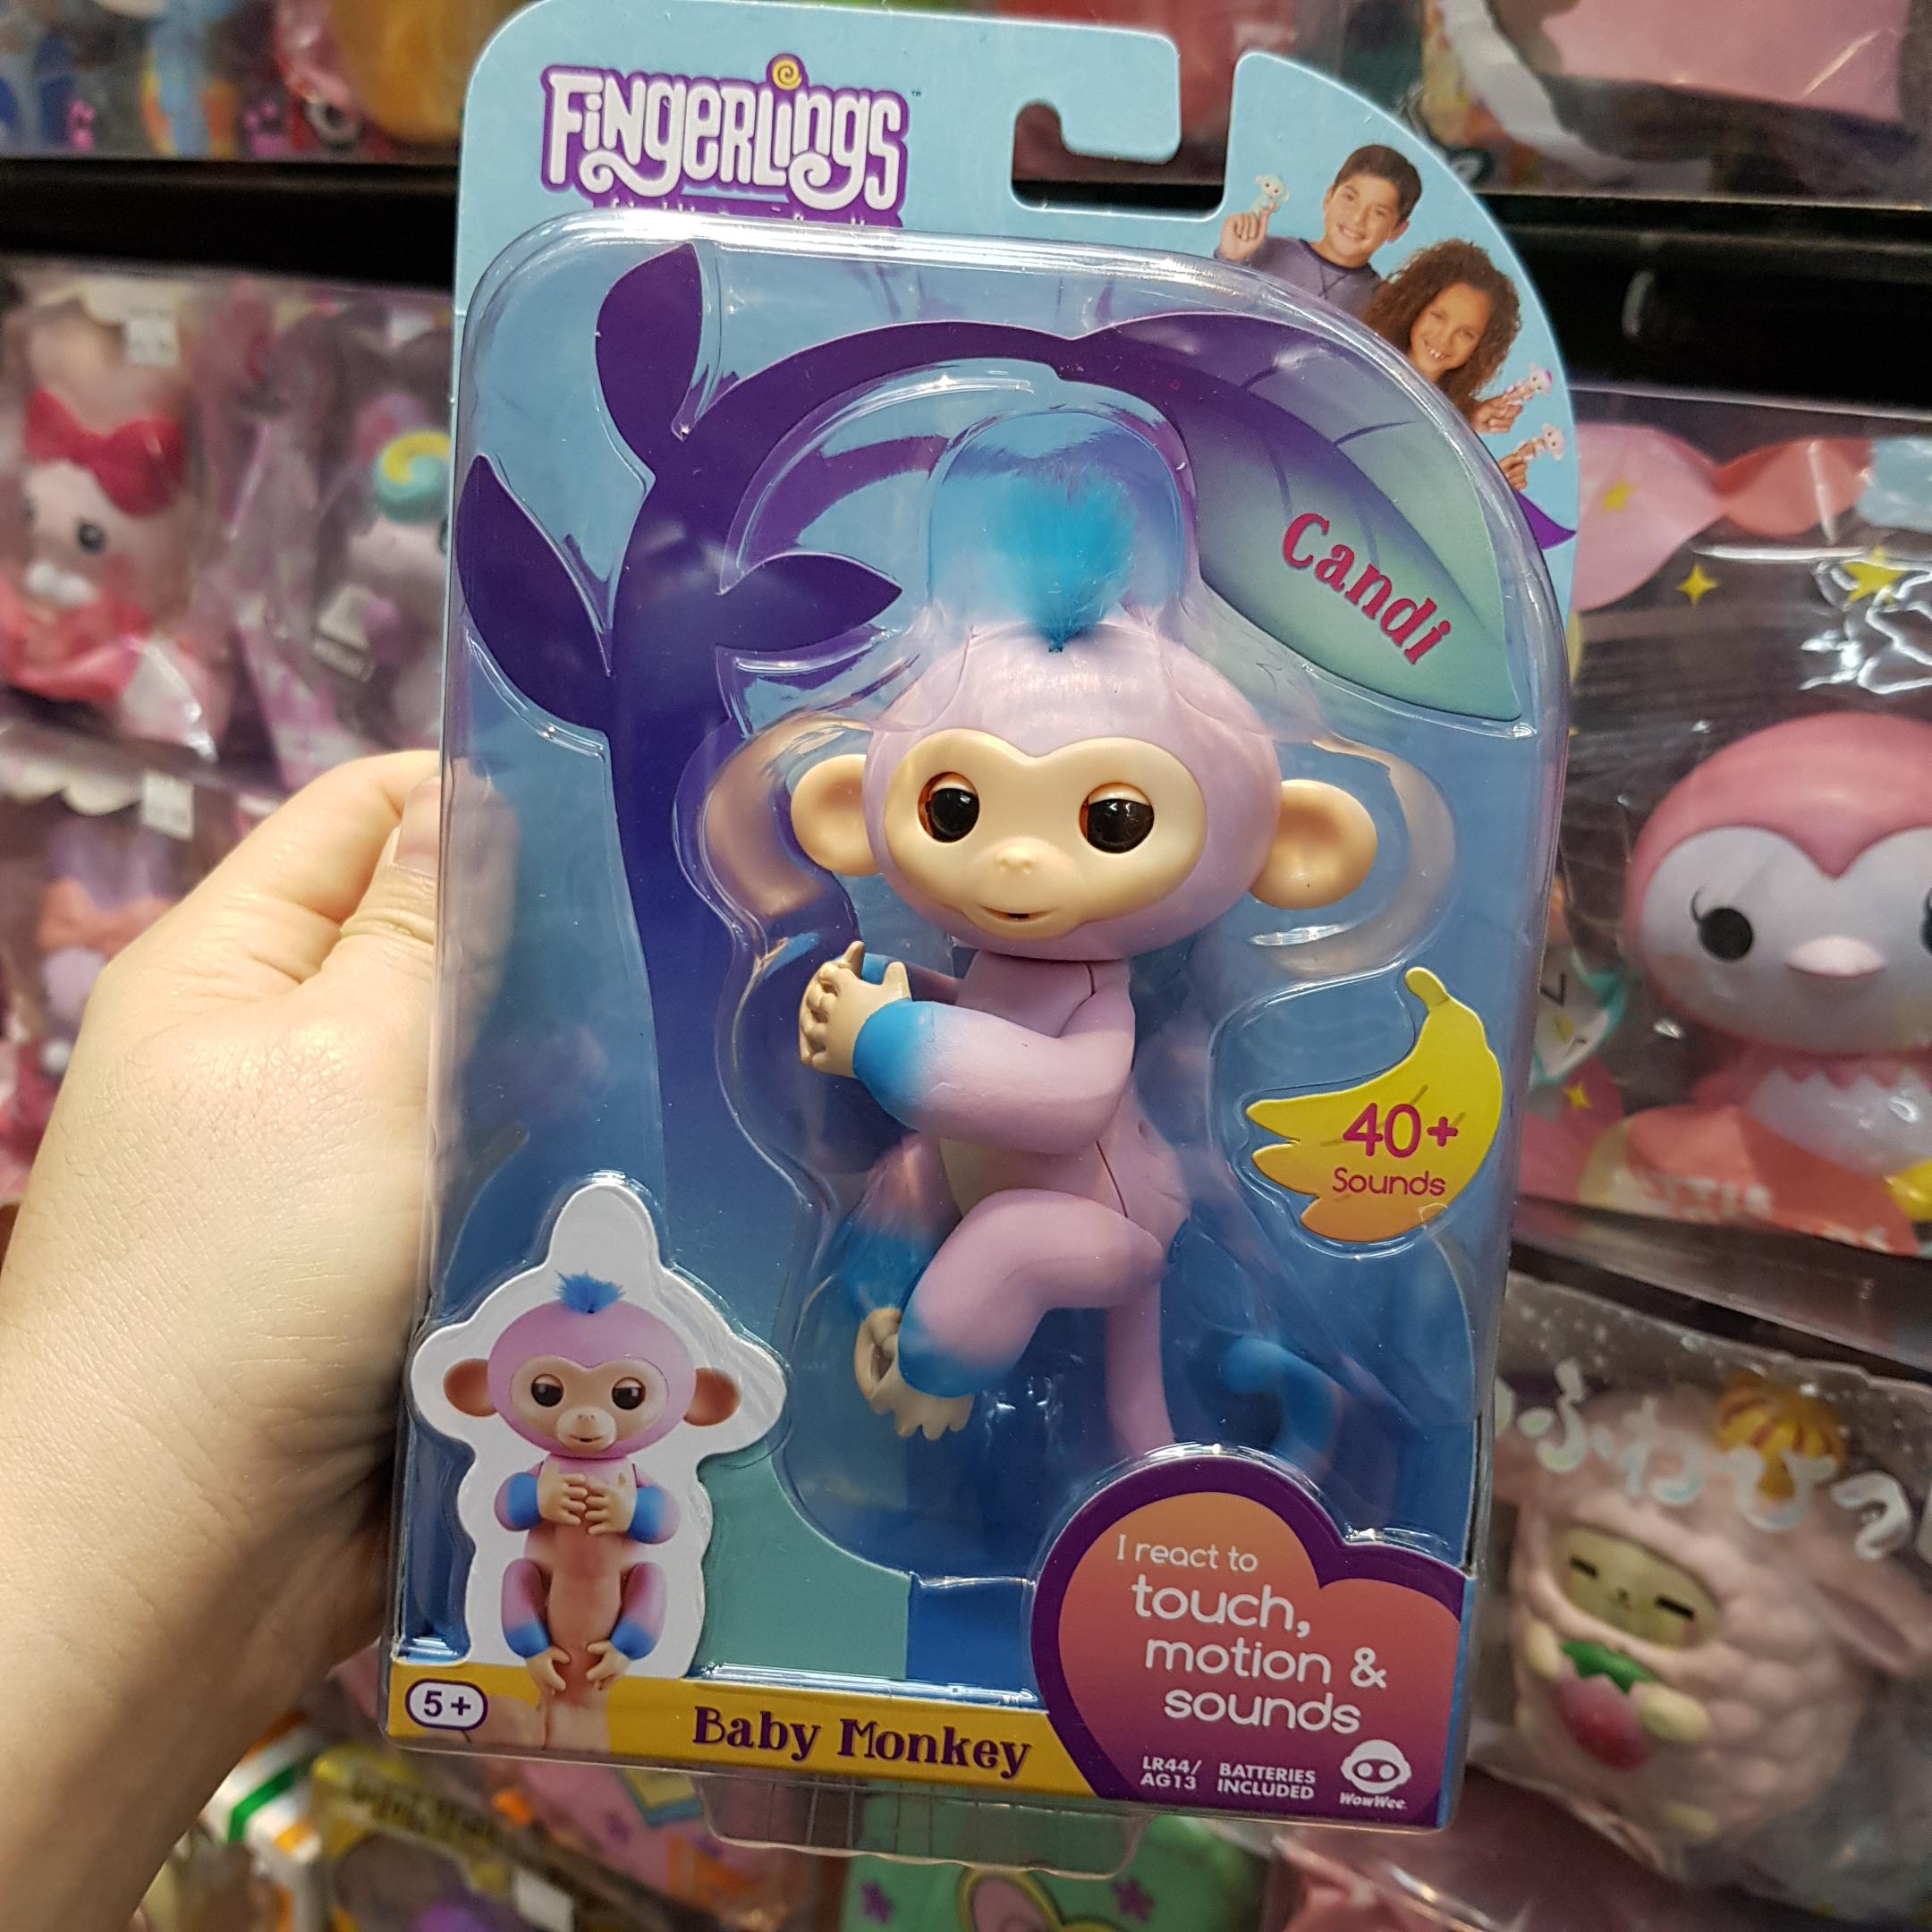 ??? Fingerlings Interactive Baby Monkey Candi 2-tone Fingerling Pink And Blue Ro Toys & Hobbies